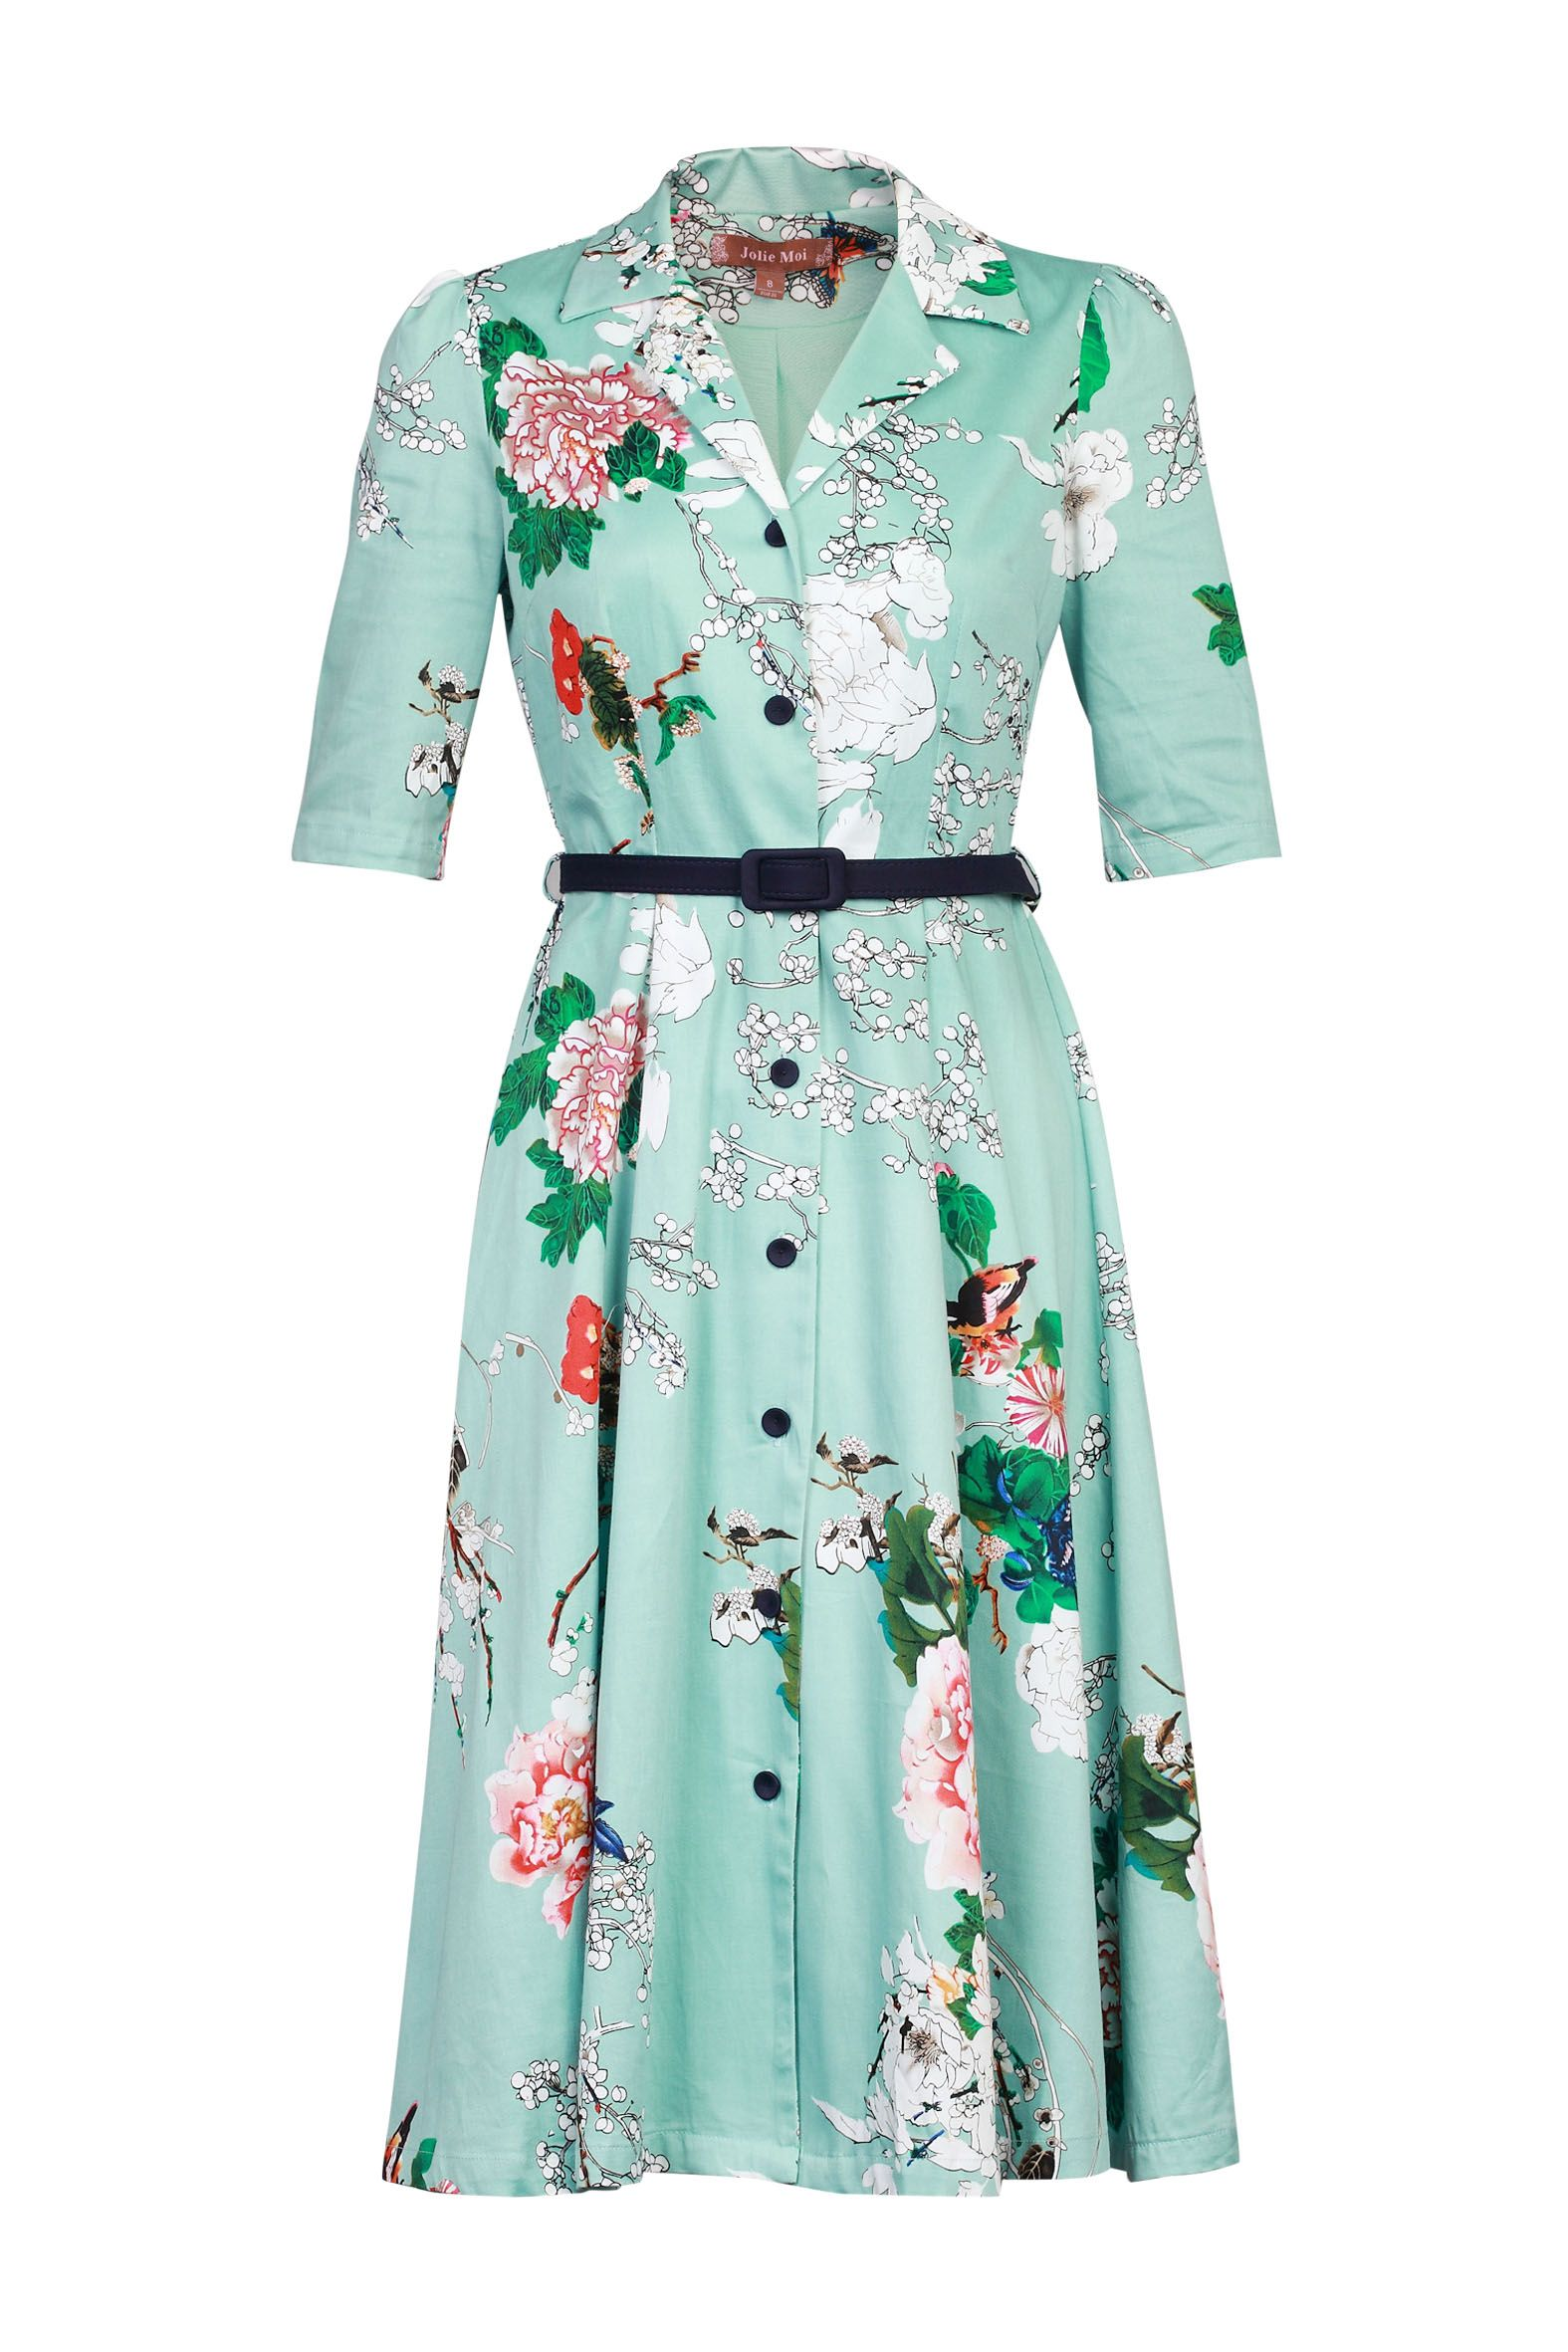 Jolie Moi Floral Print Shirt Dress, Aqua